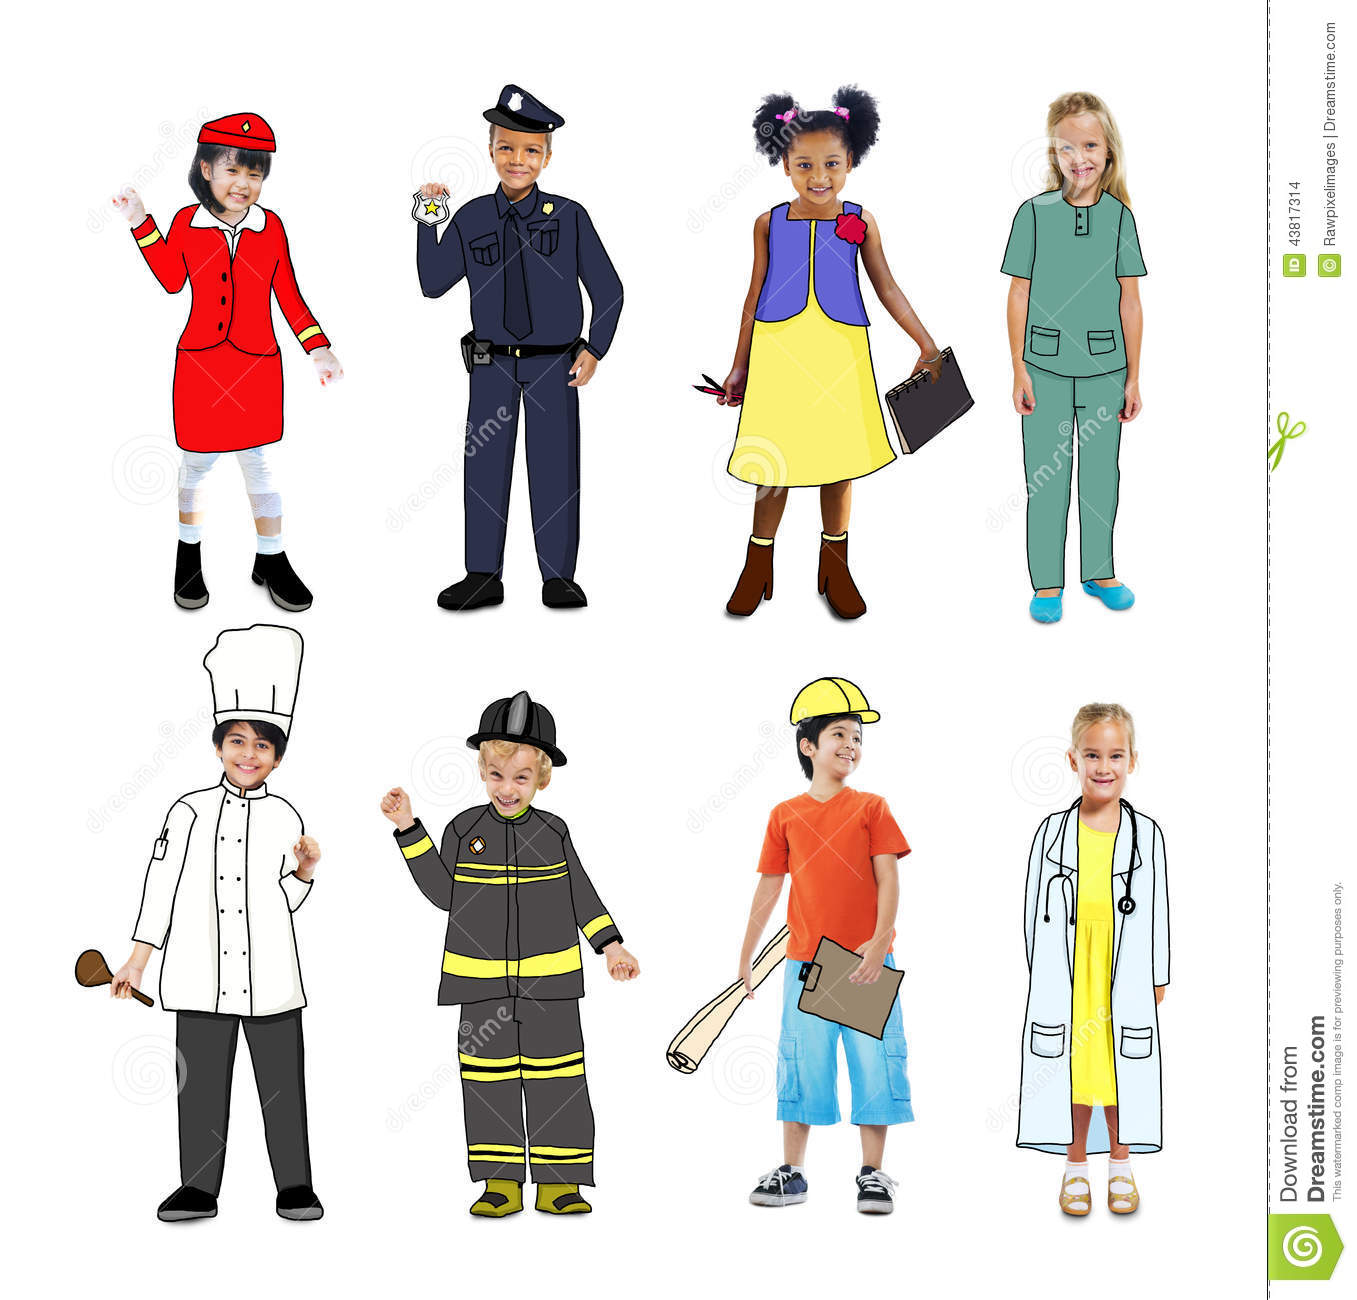 Work uniforms clipart.